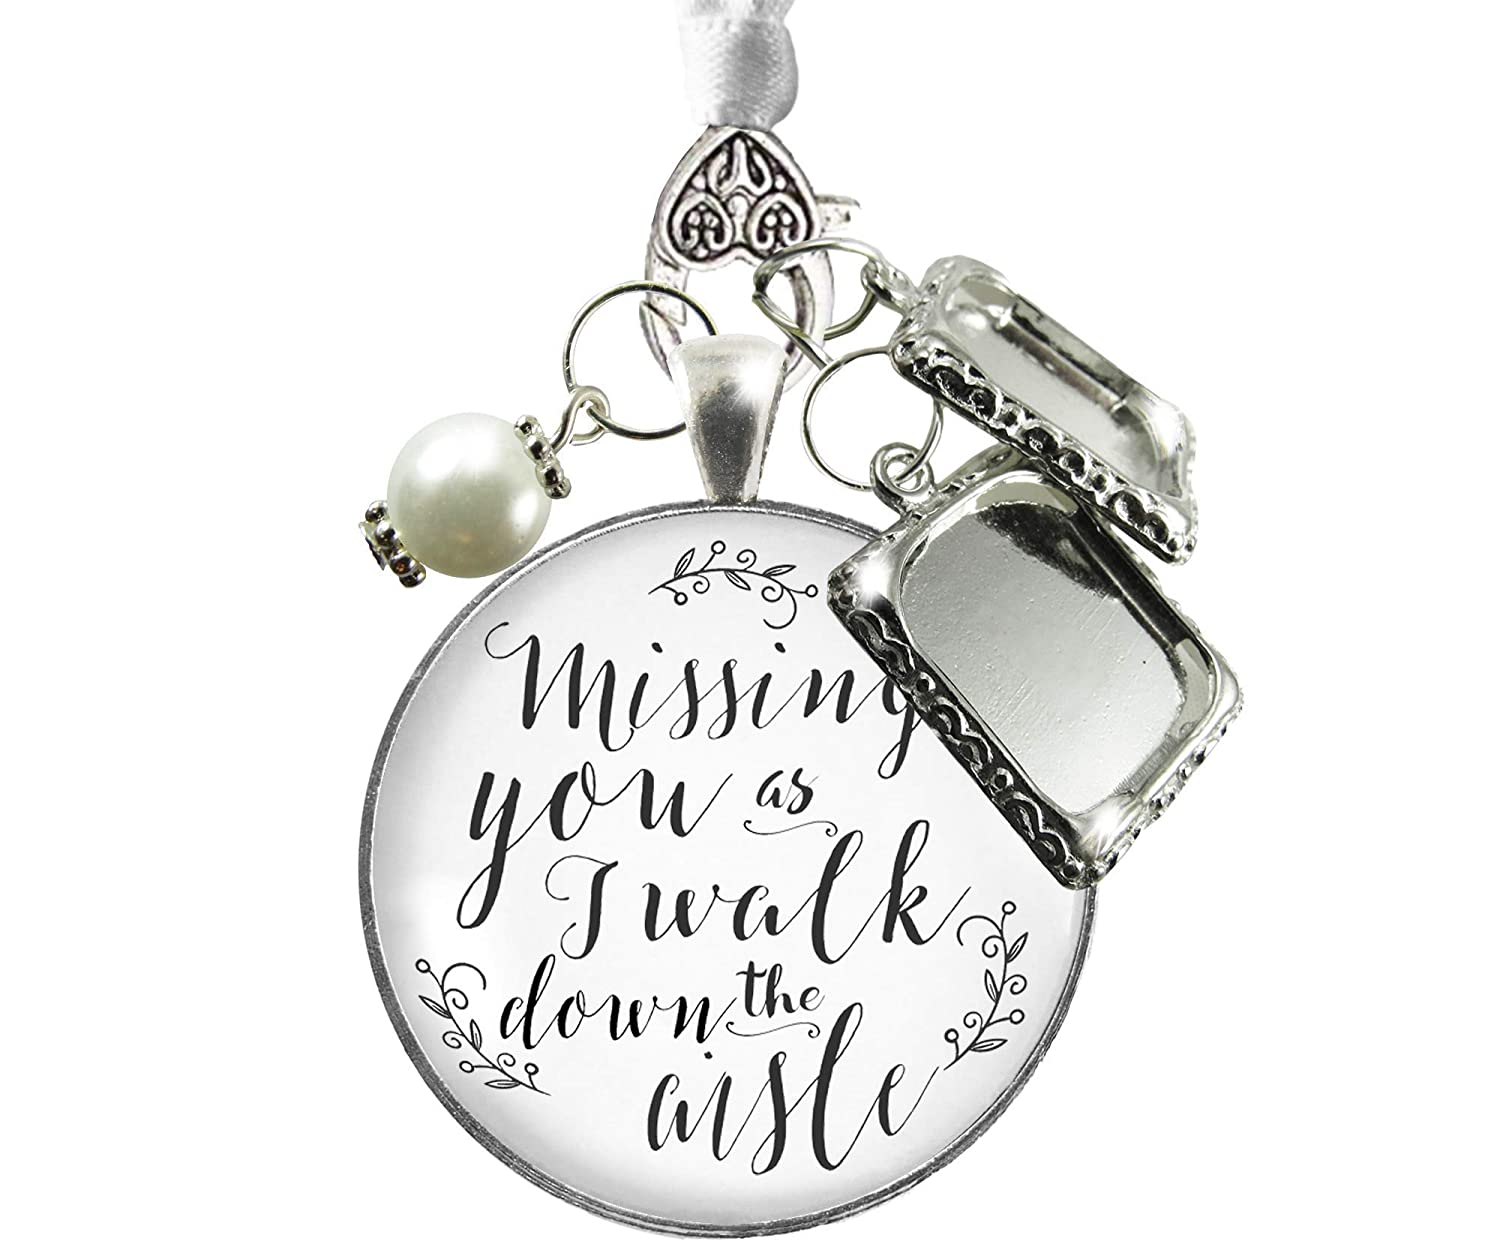 Bouquet Wedding Charm Missing You Silver Tone Bridal Memorial Photo Jewelry 2 Frames